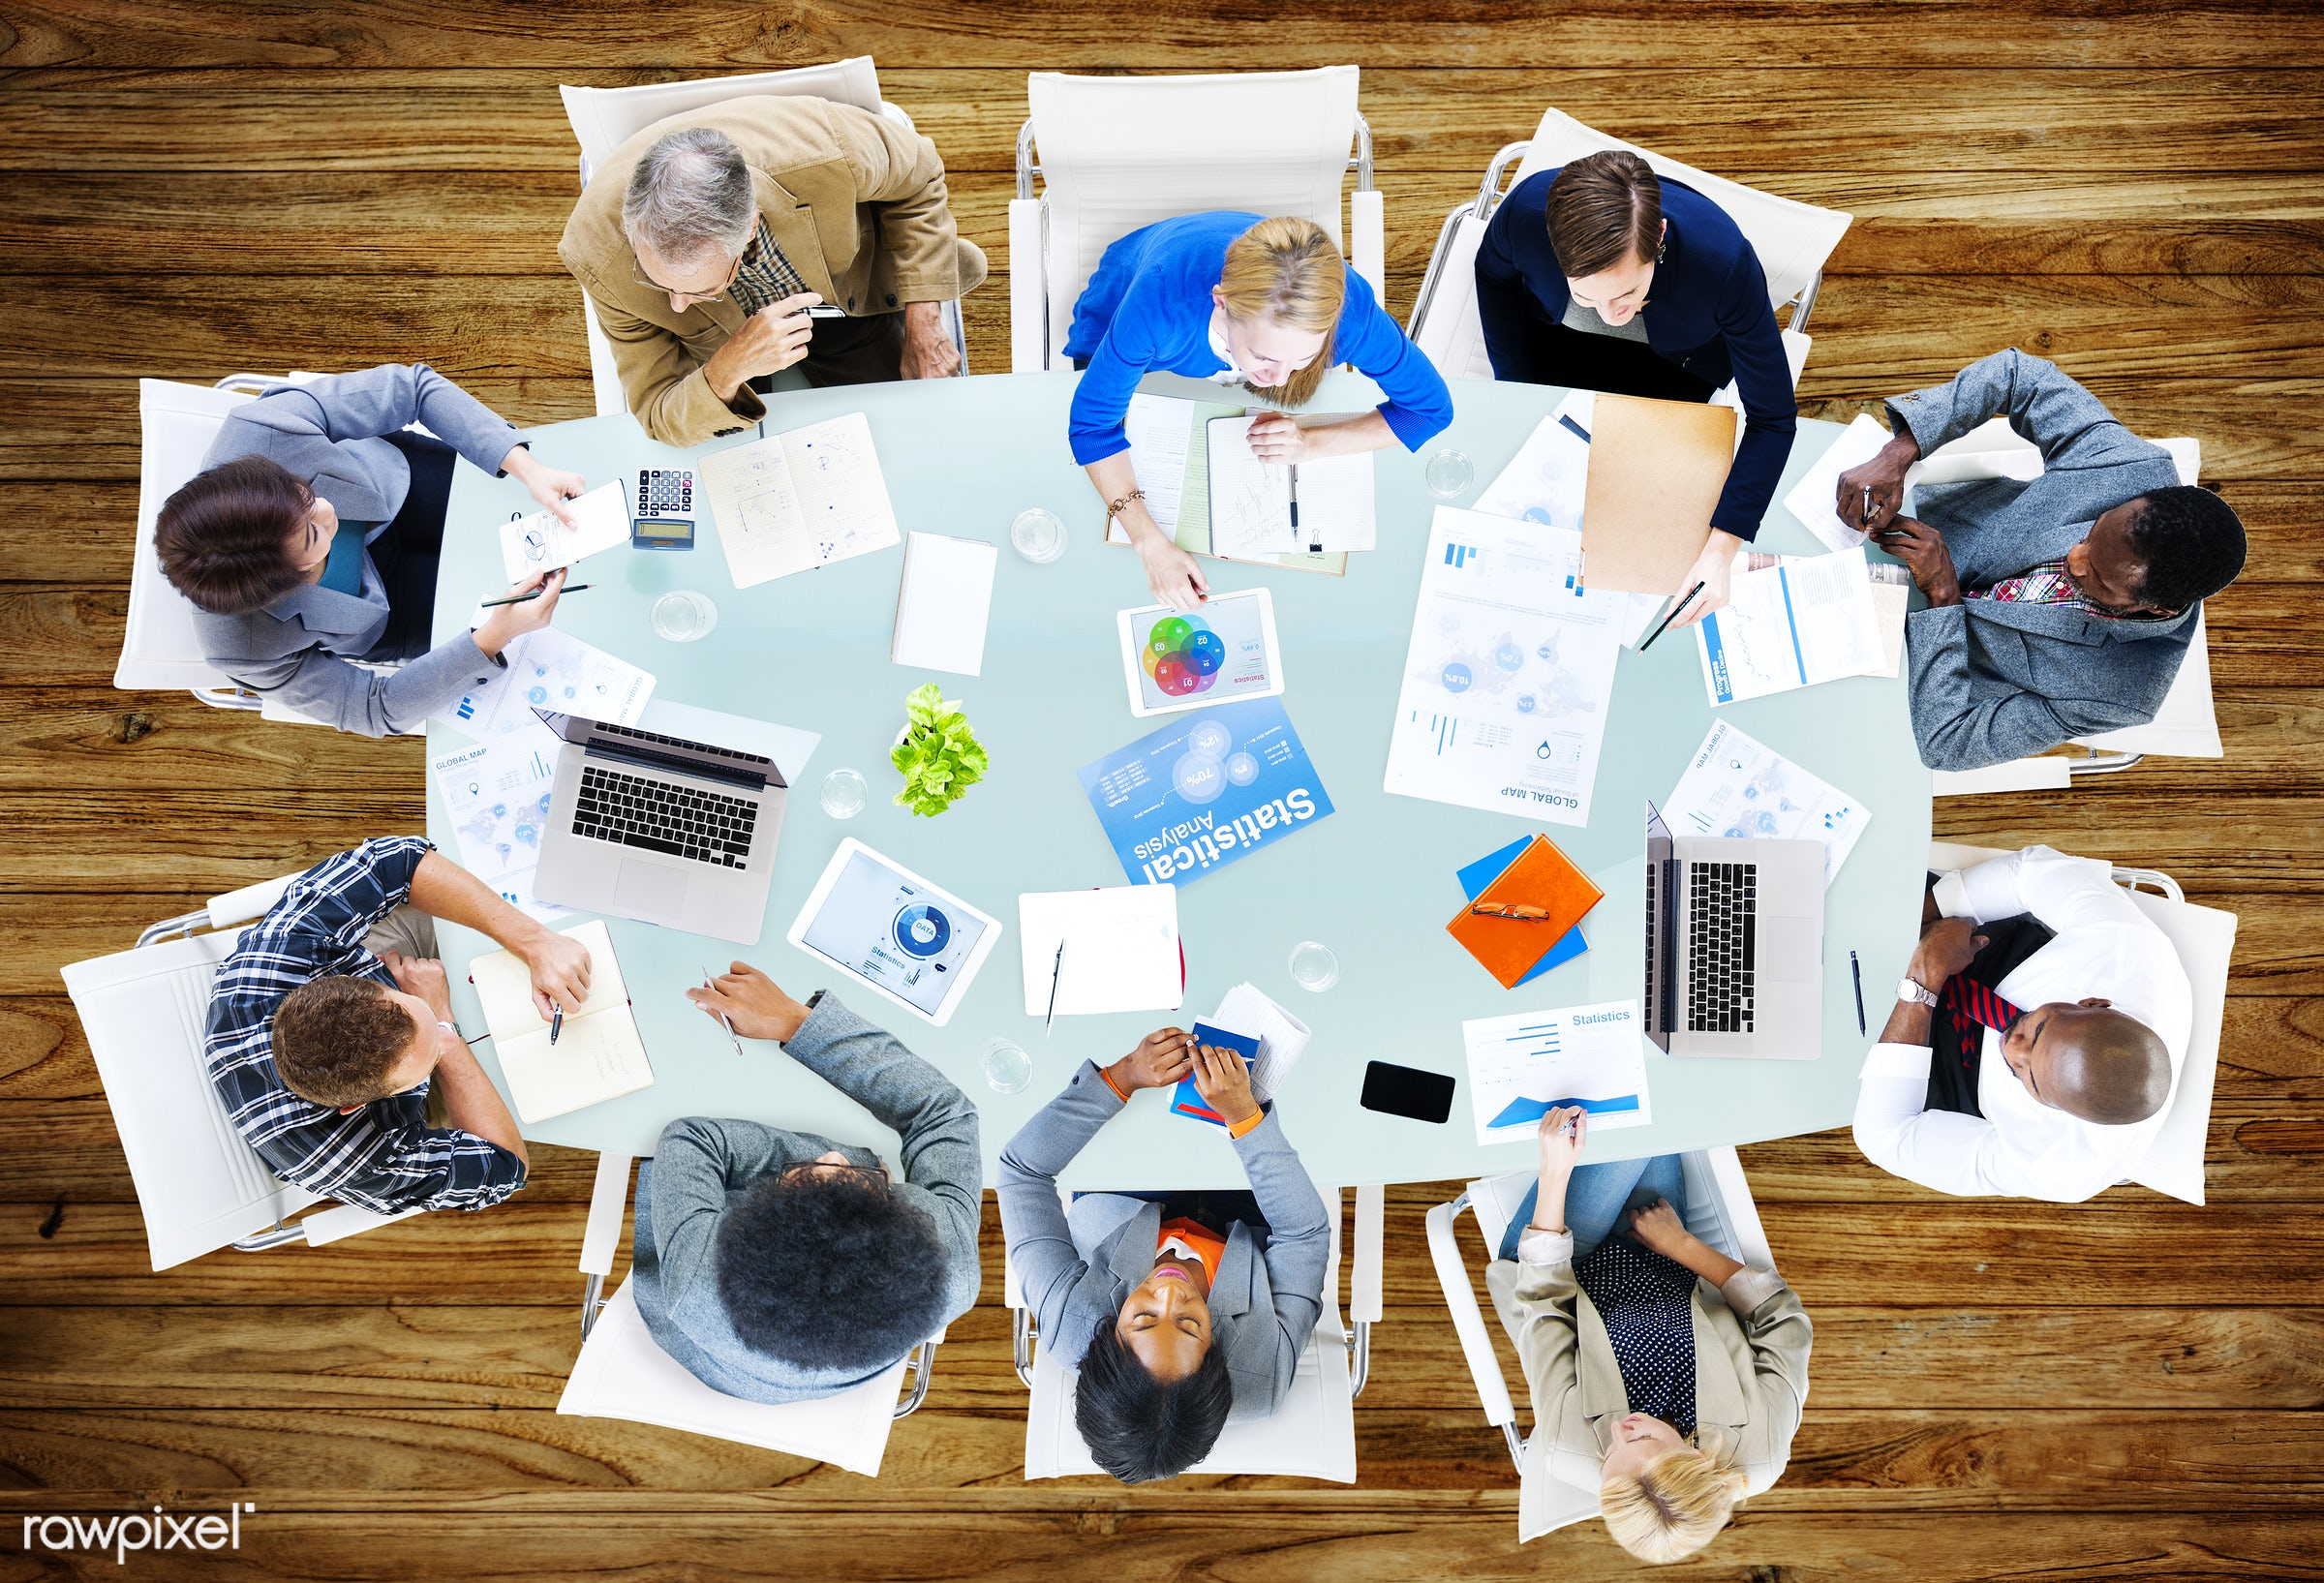 aerial view, backgrounds, brainstorming, business, business people, businessmen, businesswomen, casual, close-up,...